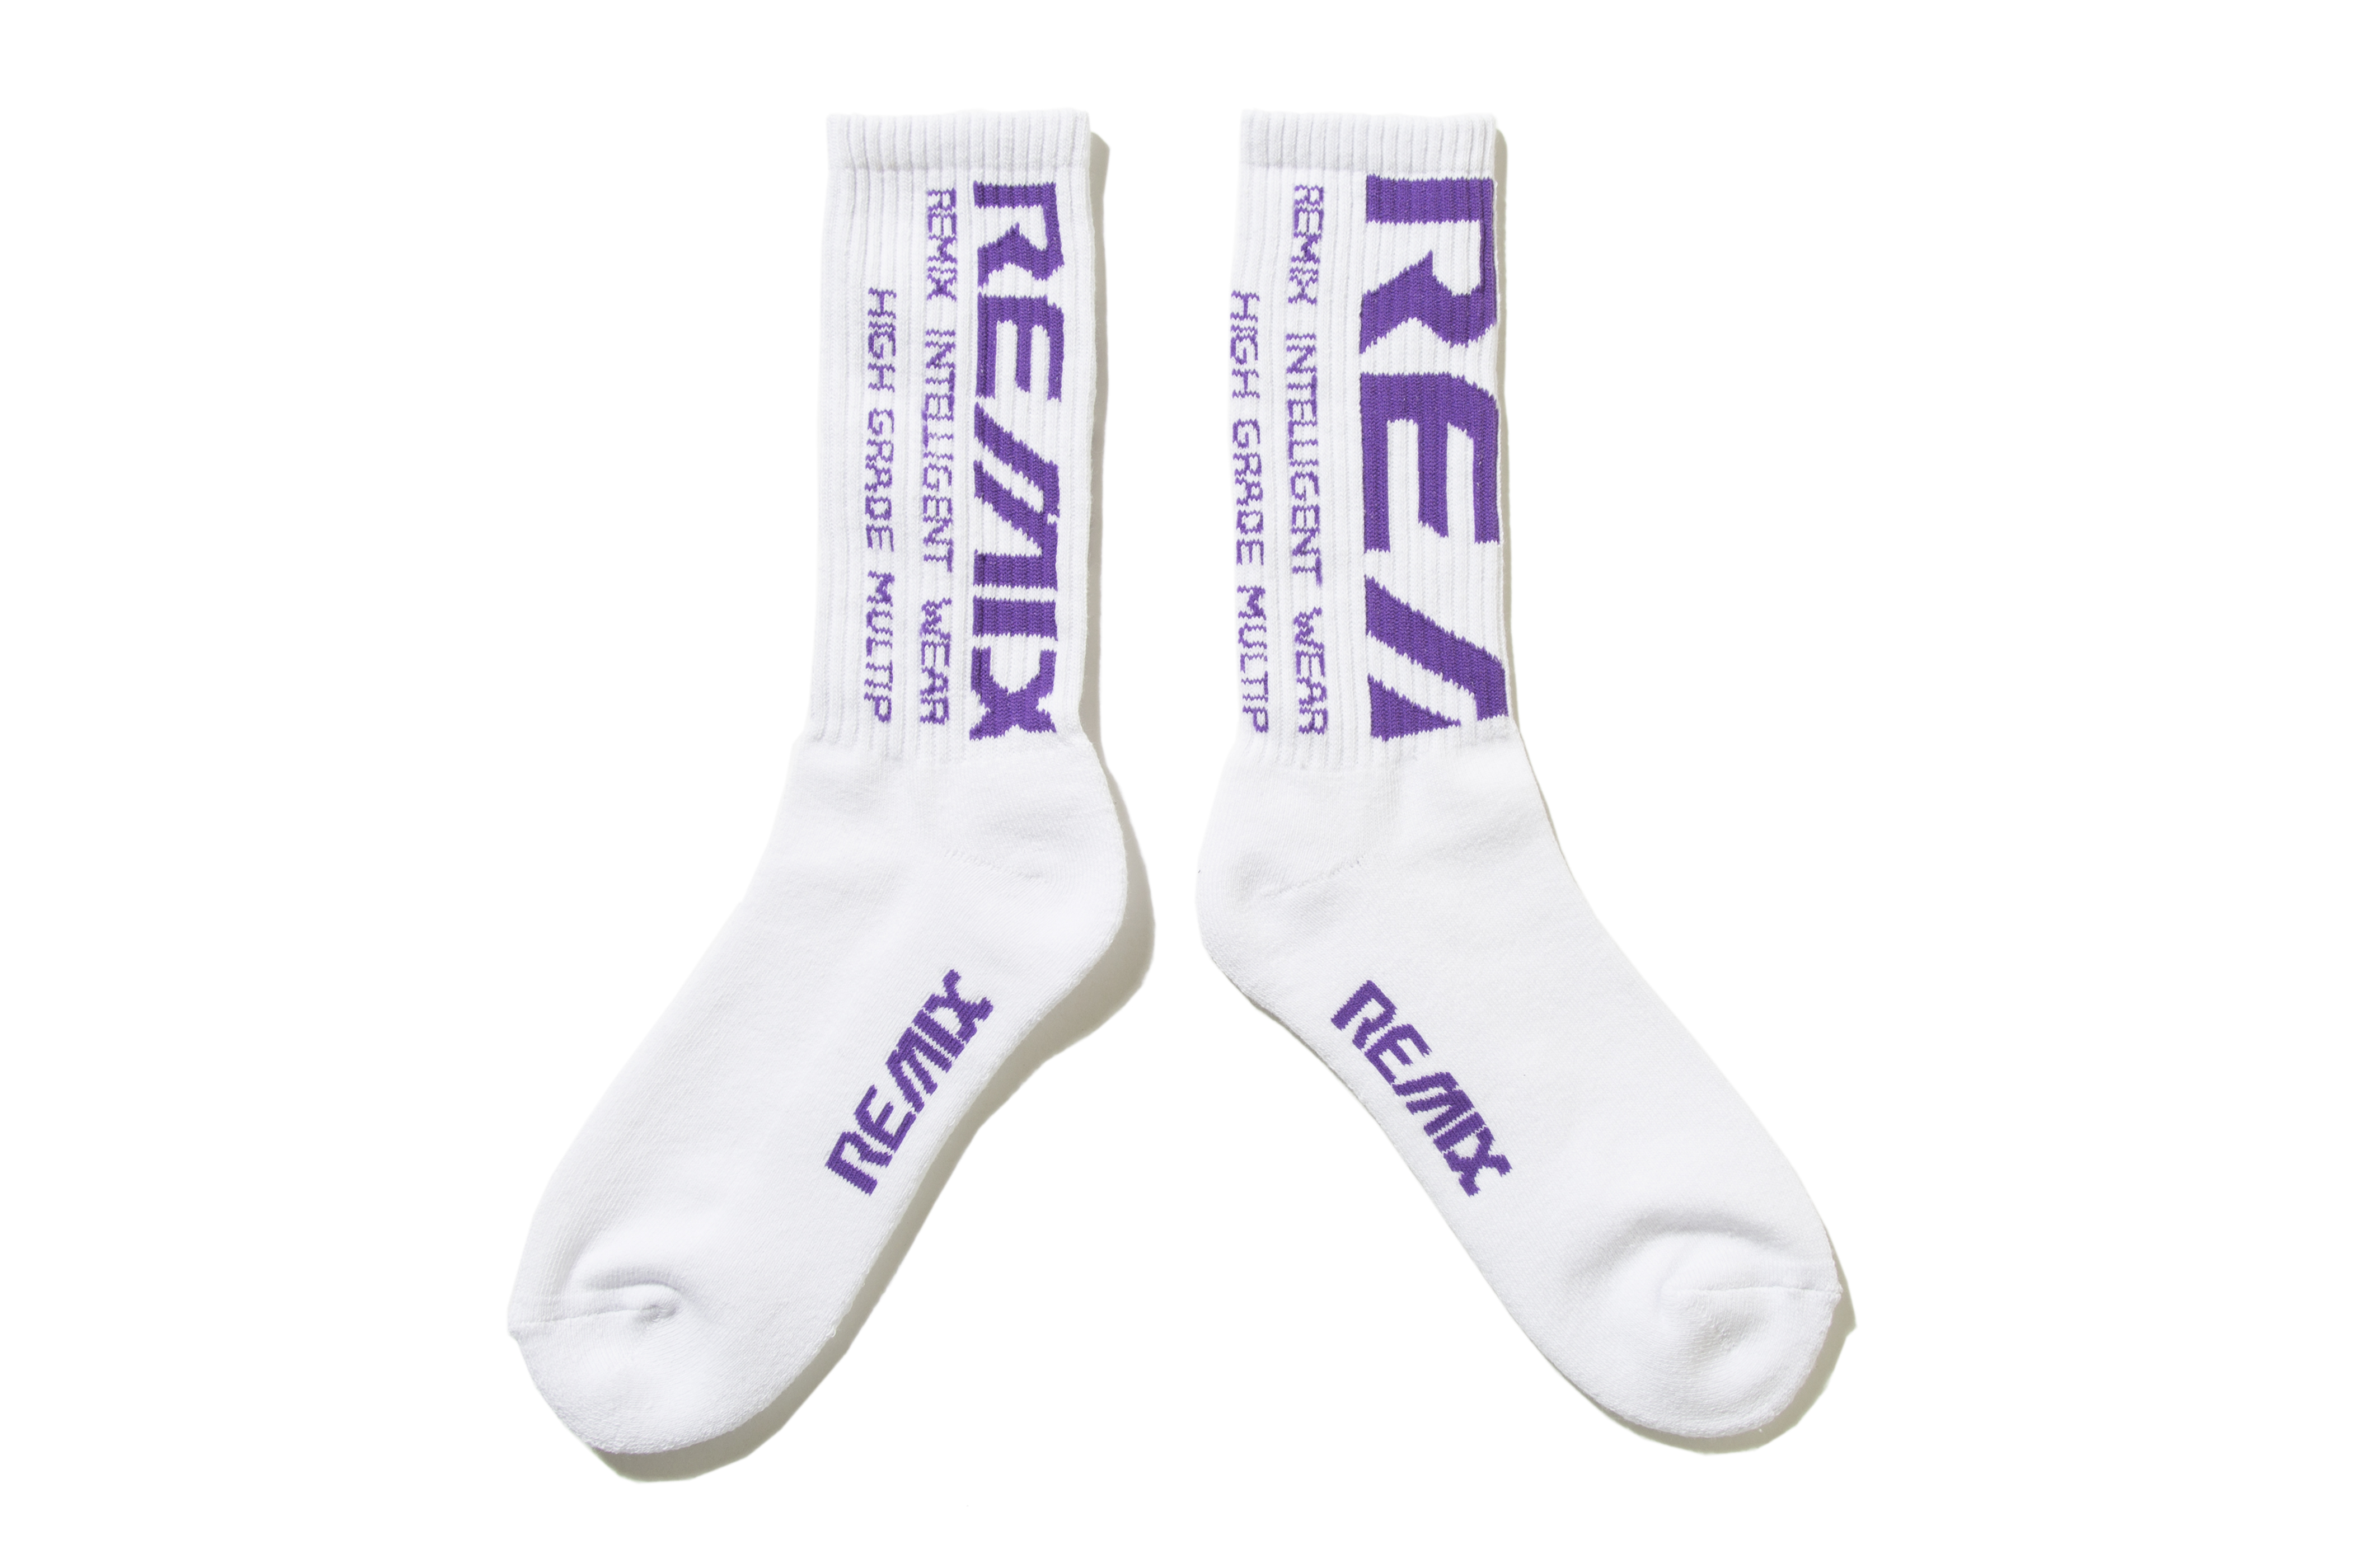 remix-bleed-crew-socks-ltd-for-rayray-white_p2